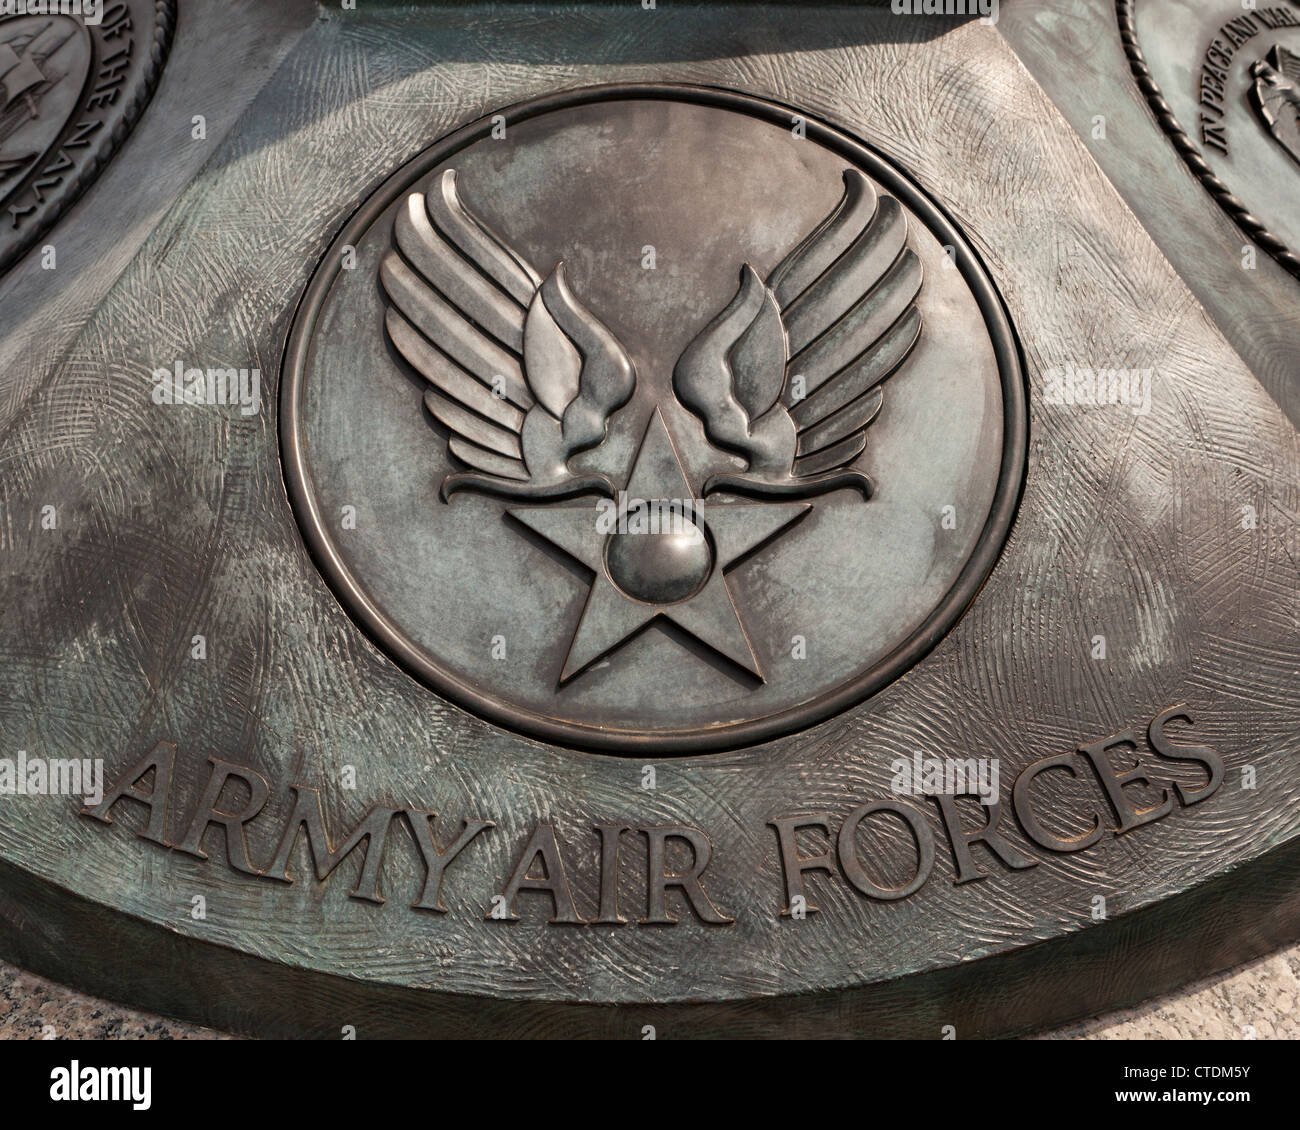 US Army Air Forces seal - Stock Image